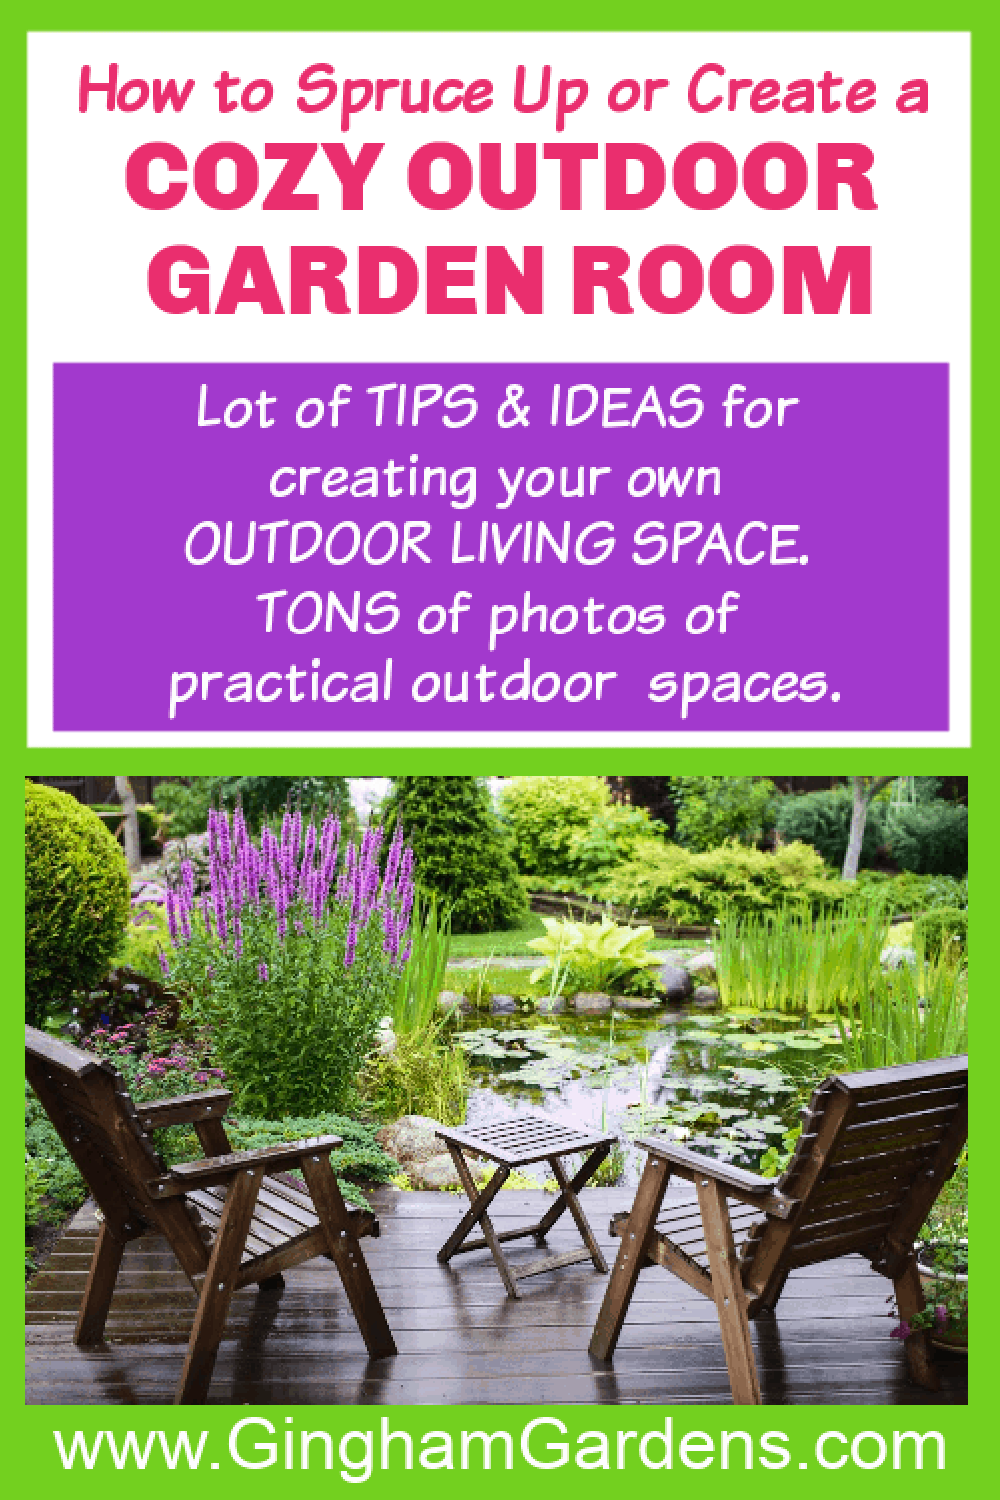 Image of a Garden Room with text overlay - How to spruce up or create a cozy outdoor garden room